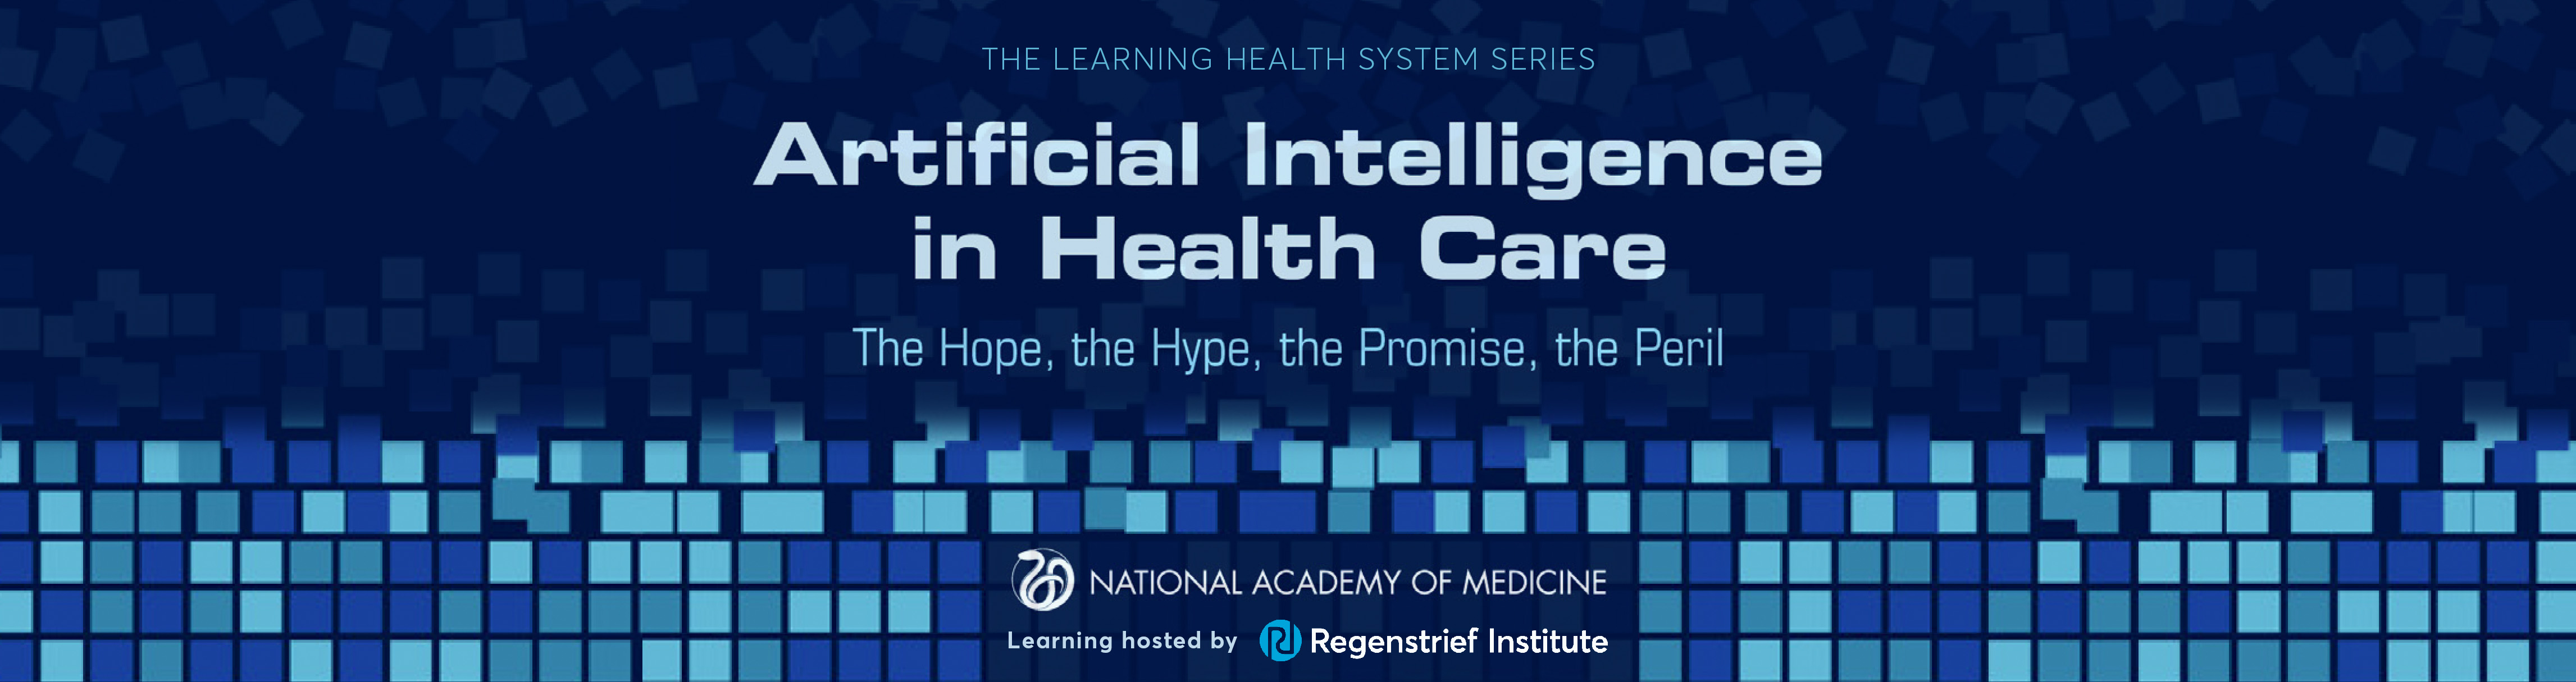 Deploying Artificial Intelligence in Clinical Settings Banner